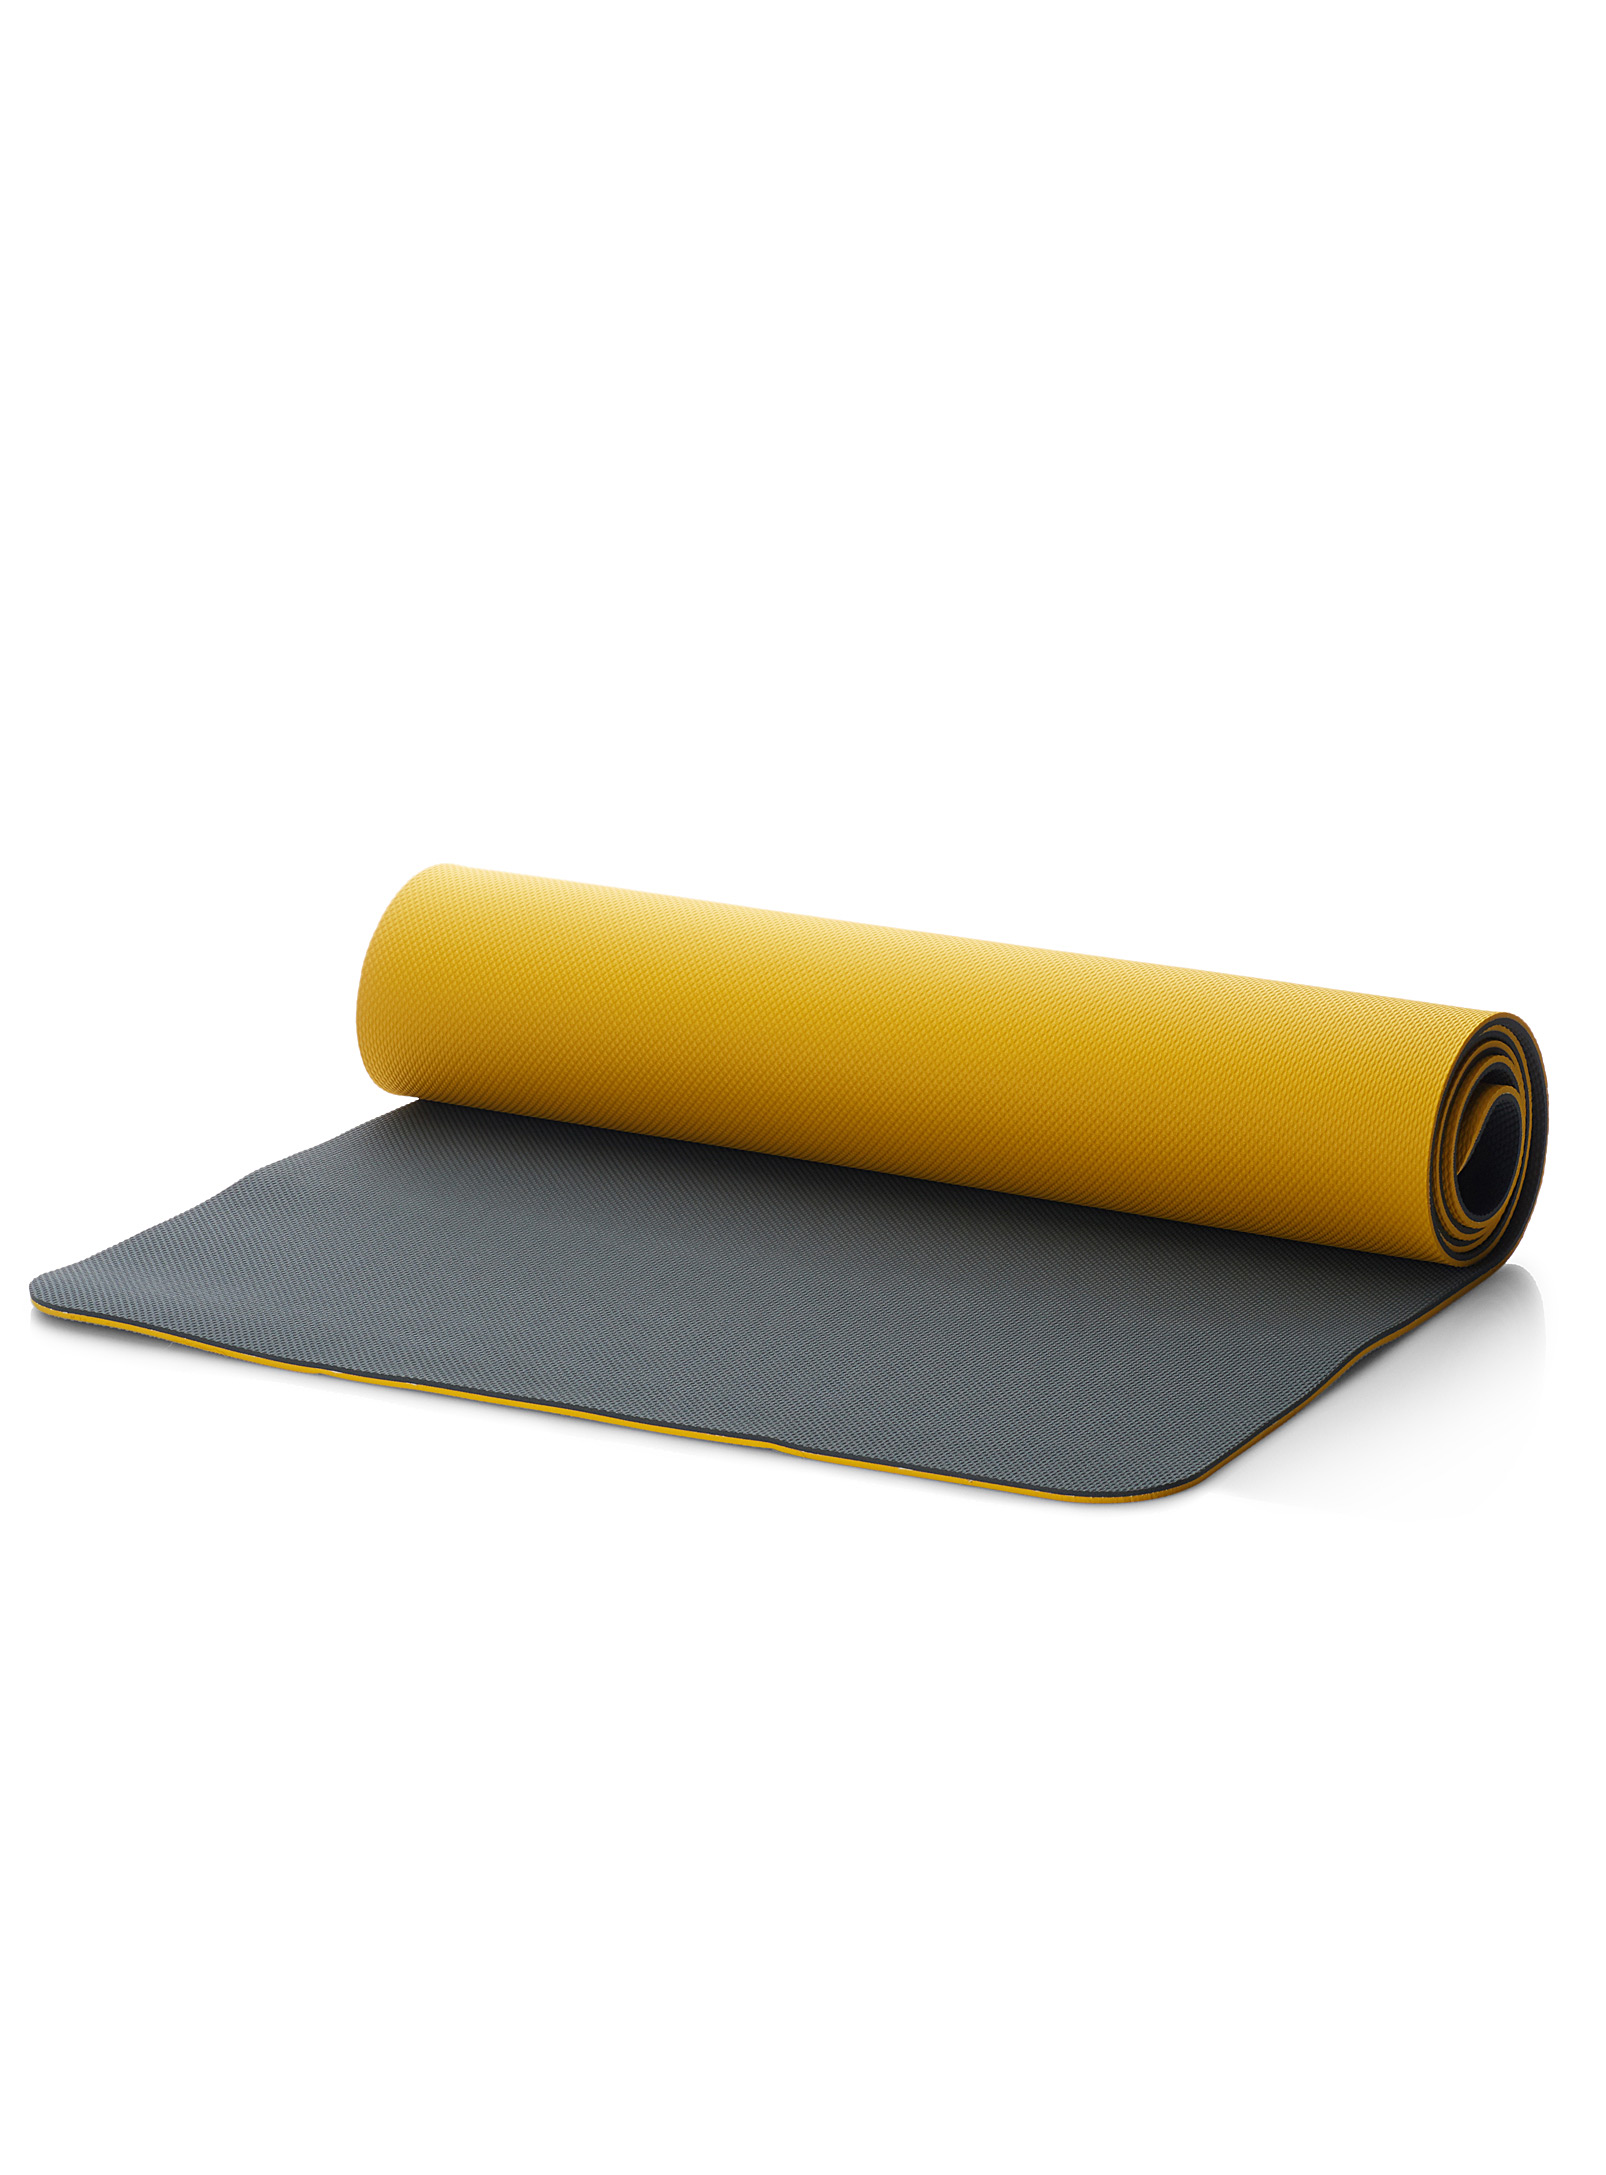 structural disablities shop for official good selling I Glow Yoga Mat